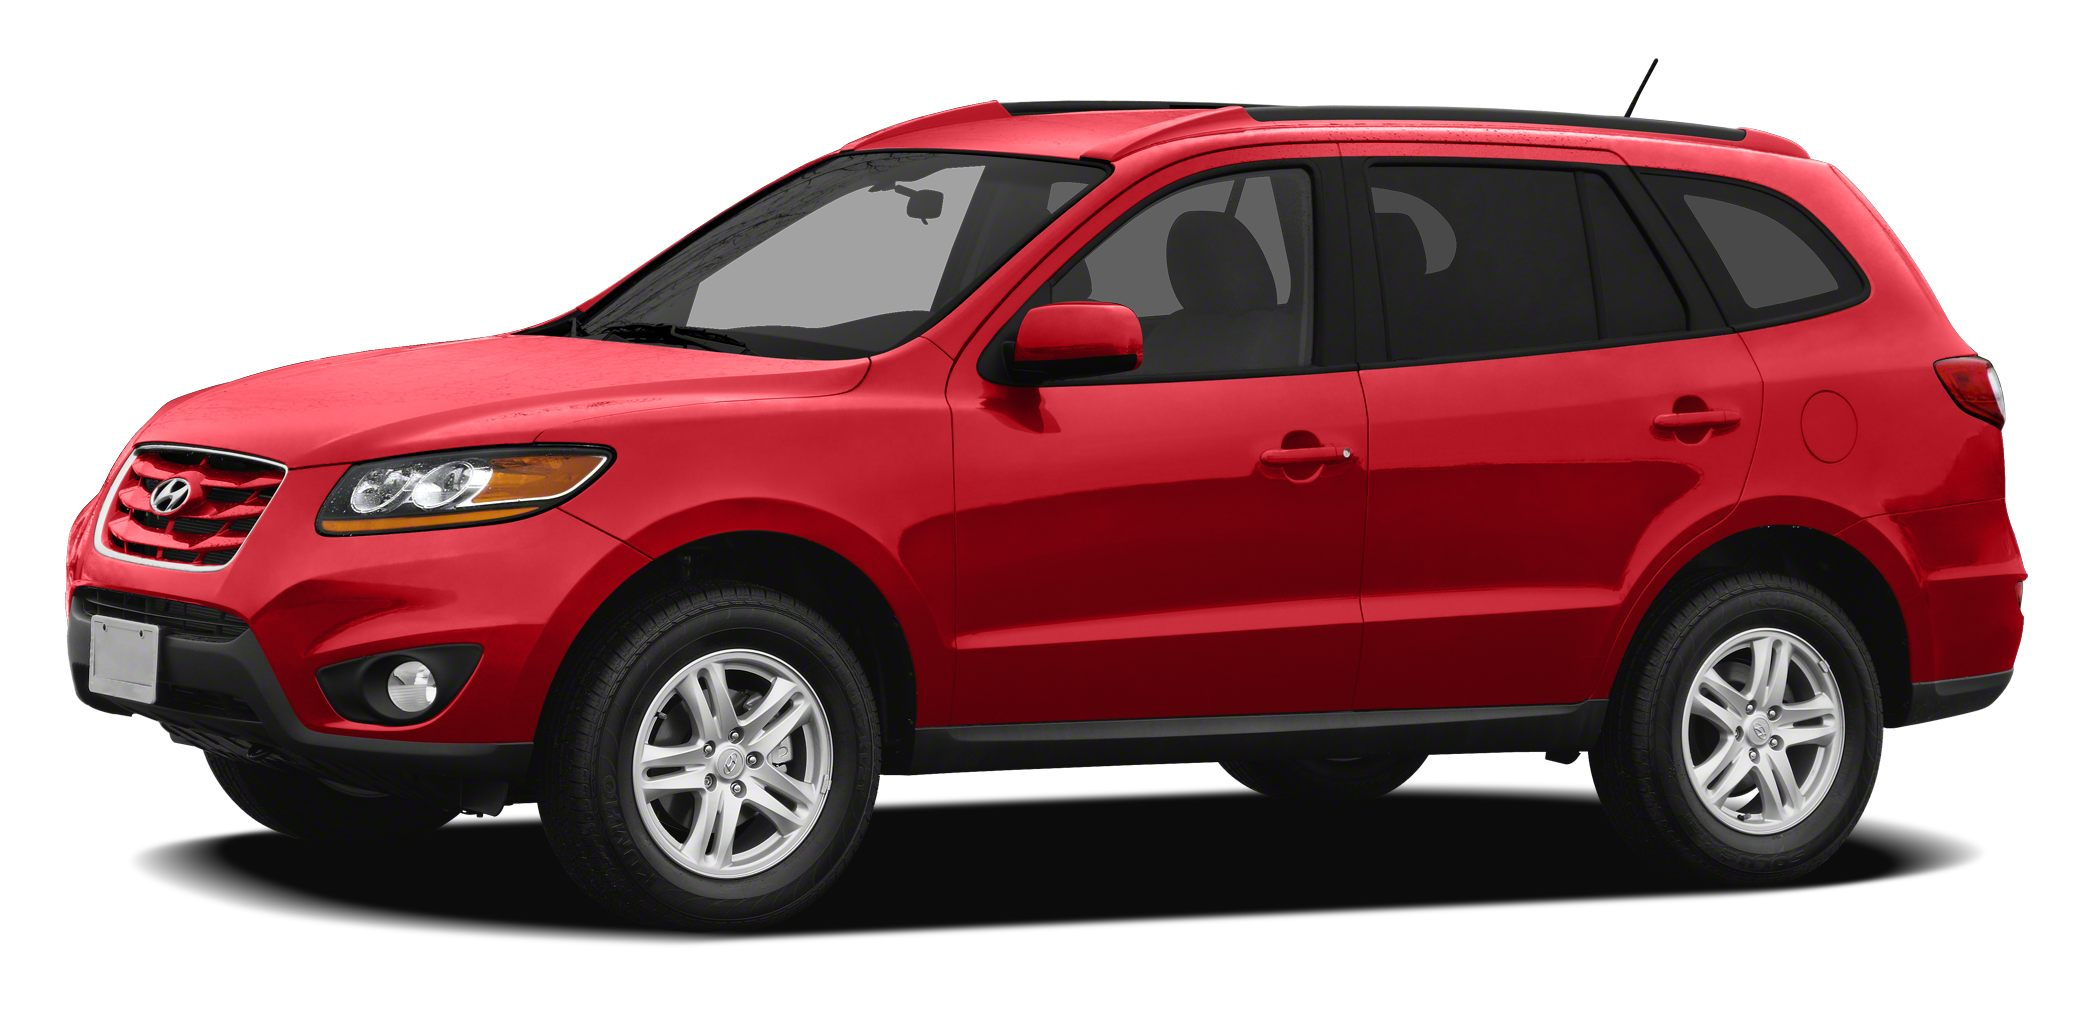 2012 Hyundai Santa Fe SE FREE CARFAX BLUETOOTH TOW PACKAGE USB - AUX - iPOD PORT and